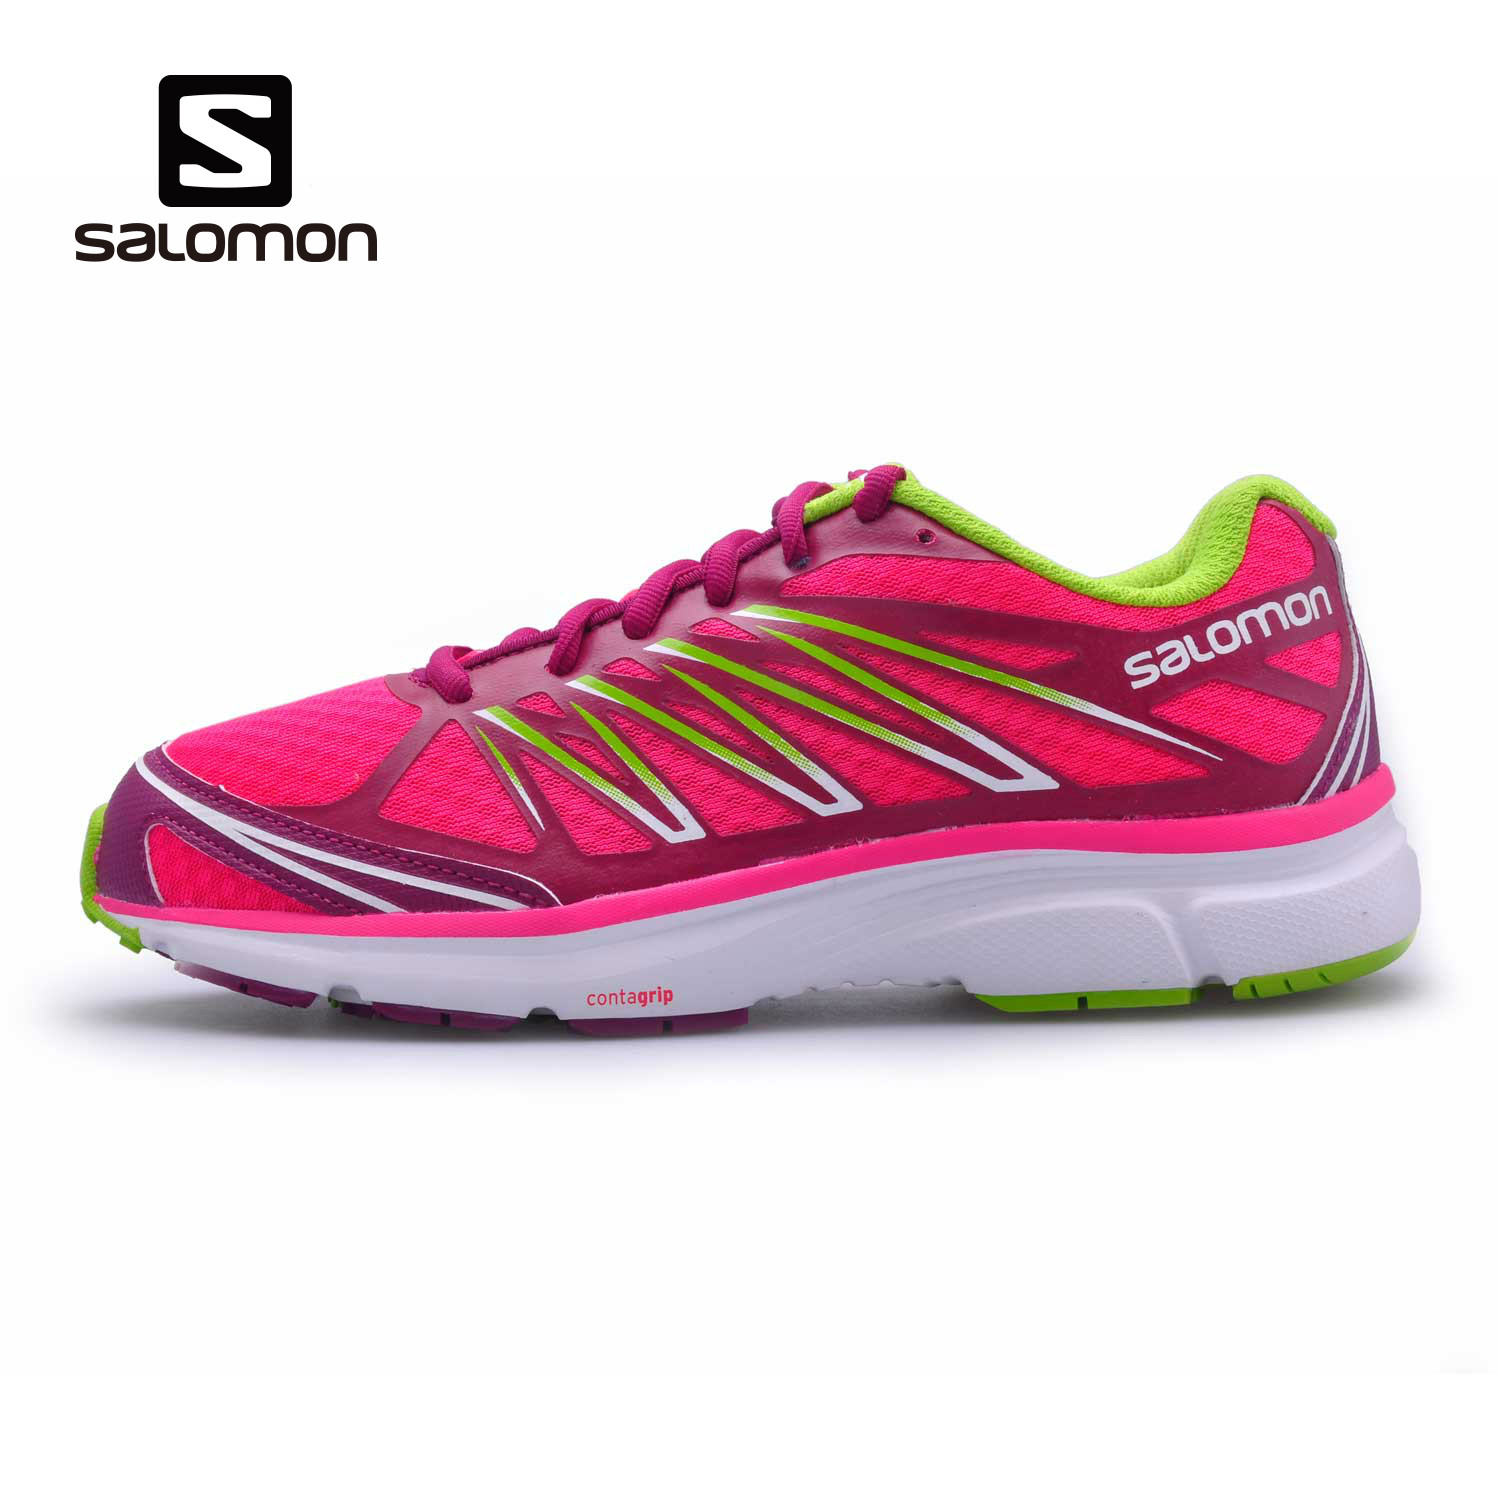 Salomon/salomon cross country running shoes outdoor female models will be 375982